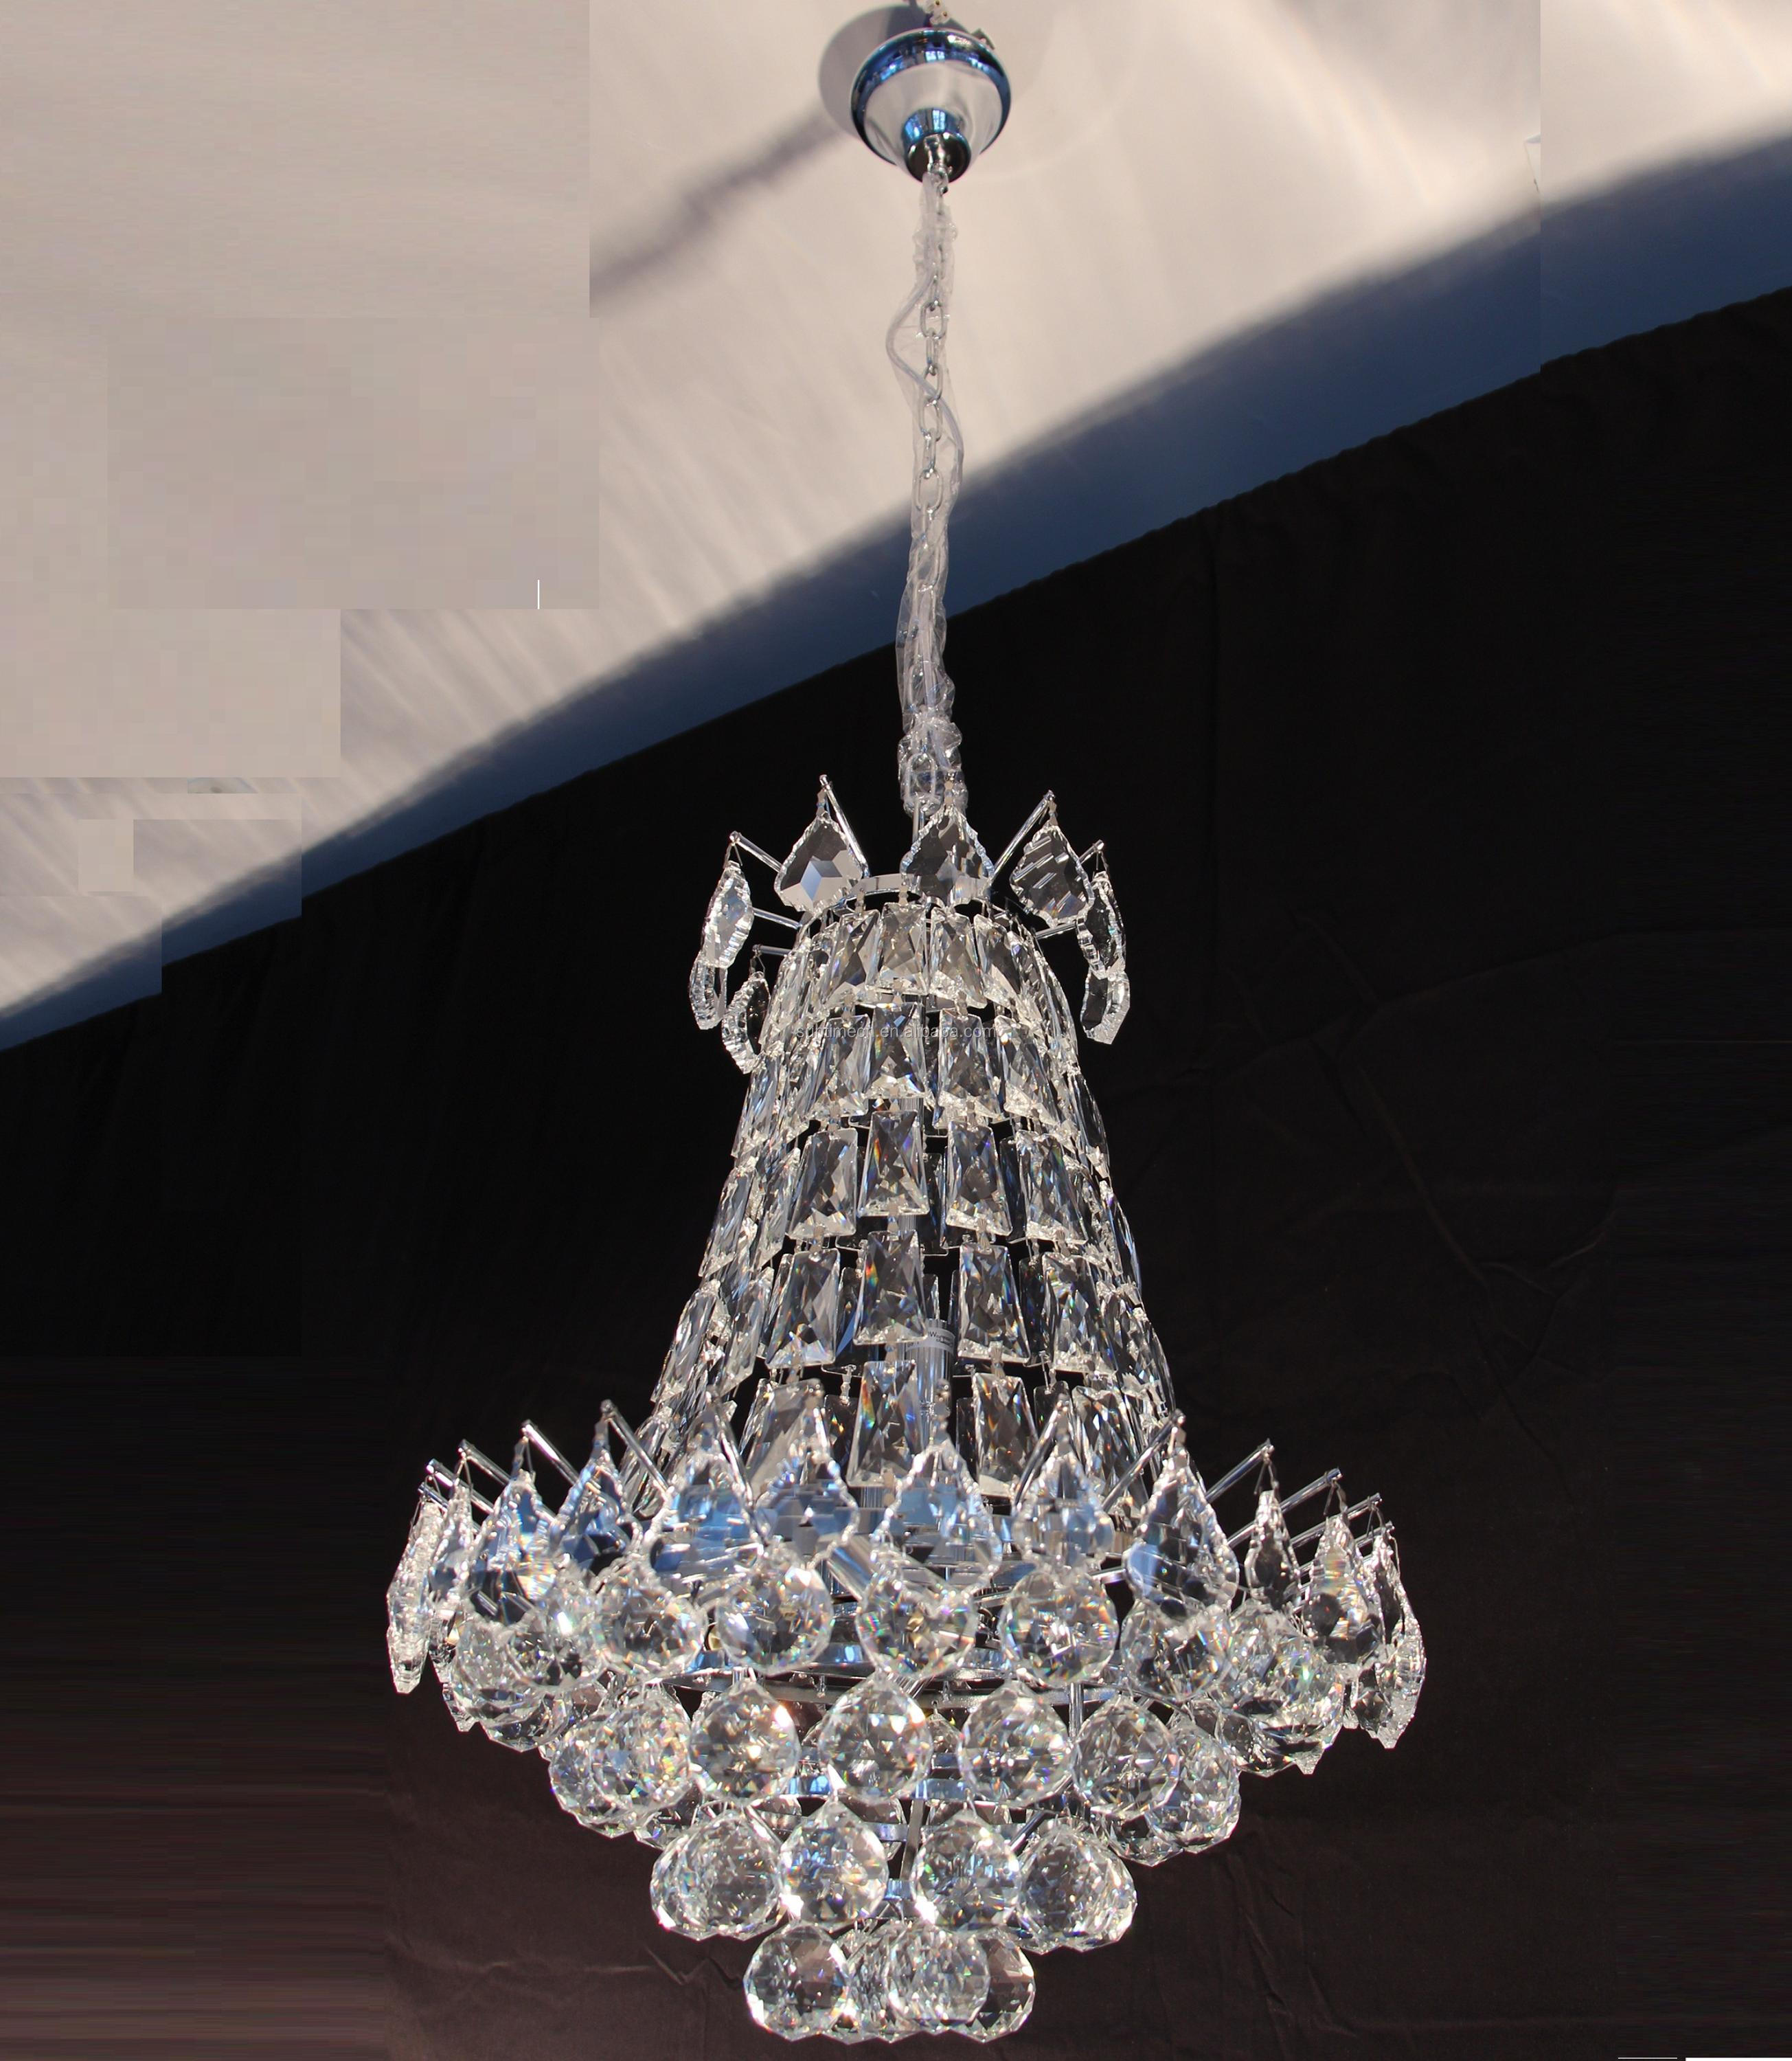 French Empire Crystal Chandelier Lighting H50 X W30 Good For Foyer Entryway Family Room Living Room And More Buy K9 Crystal Chandelier Large